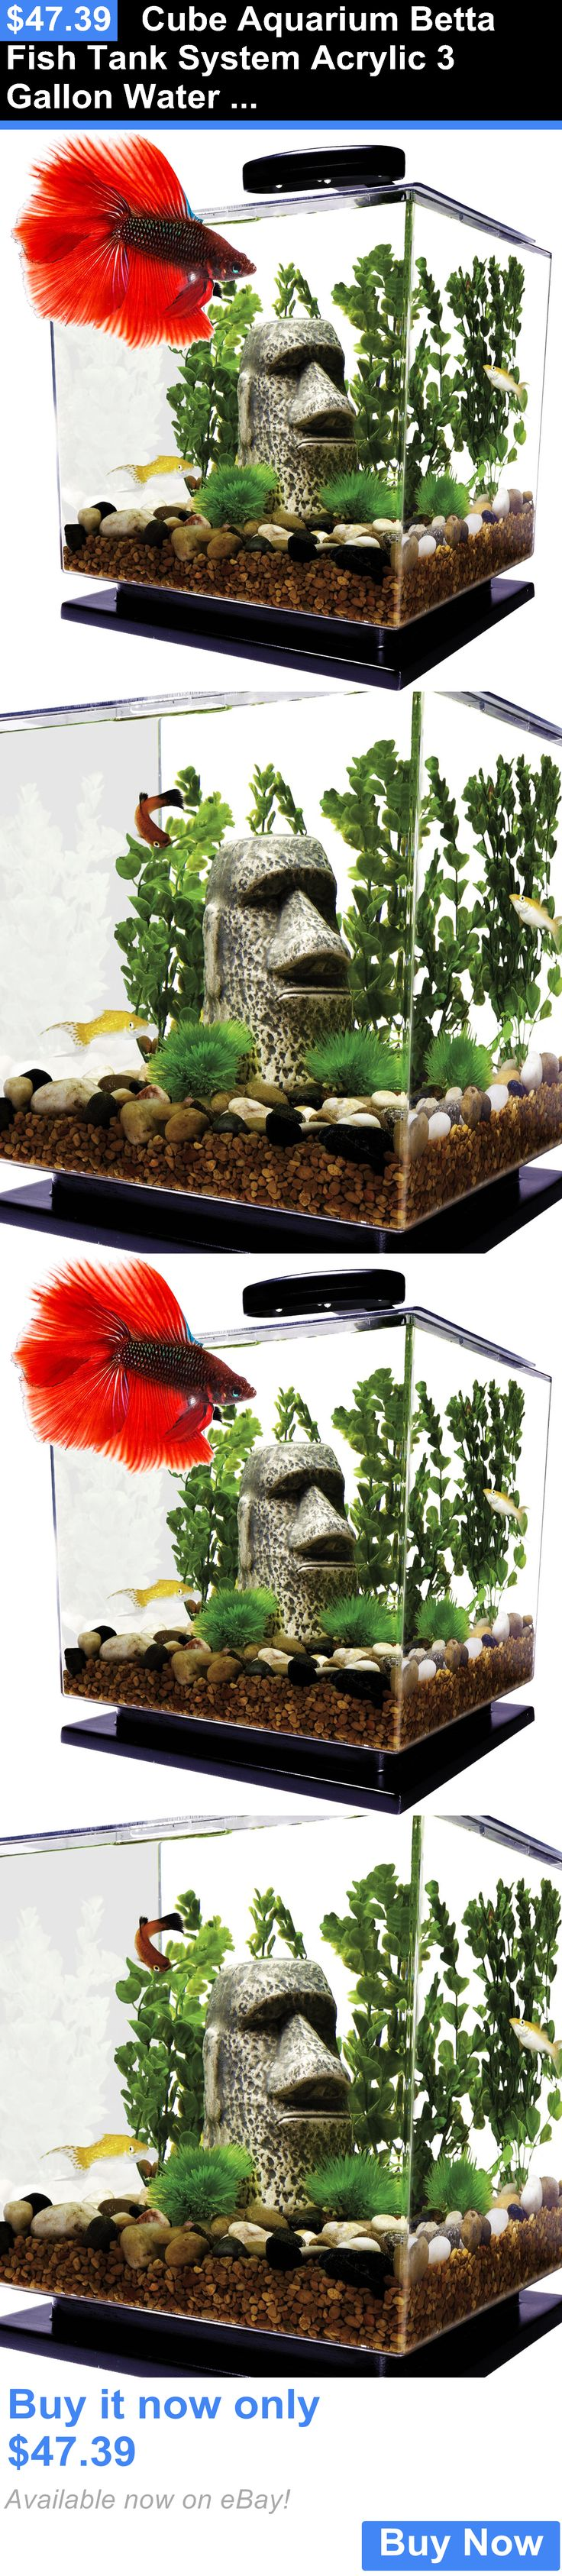 Animals Fish And Aquariums: Cube Aquarium Betta Fish Tank System Acrylic 3 Gallon Water Filter Led Light Set BUY IT NOW ONLY: $47.39